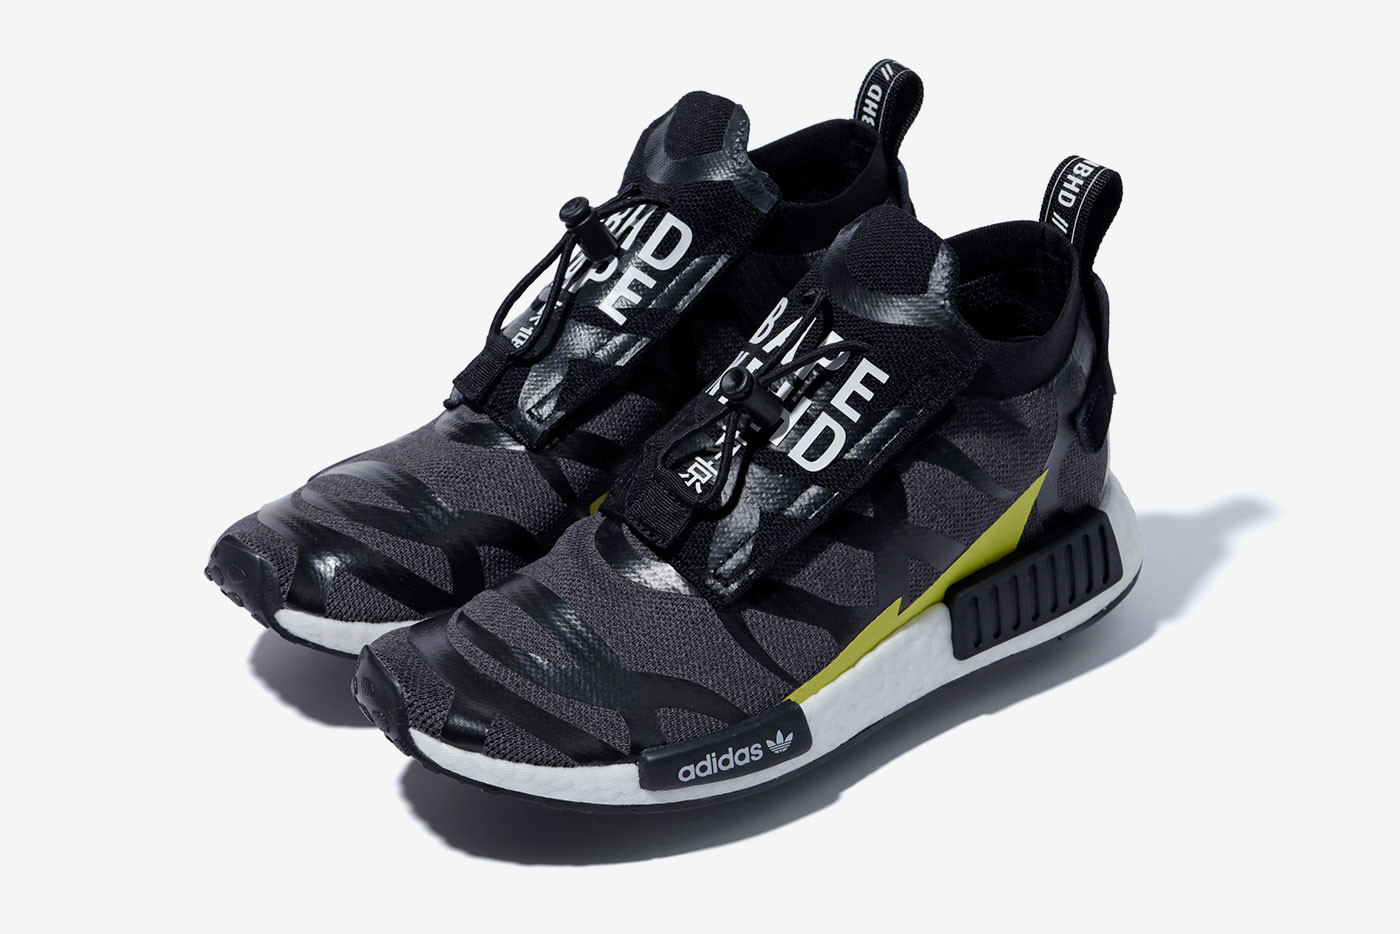 166db8003 Adidas Nmd Release Time